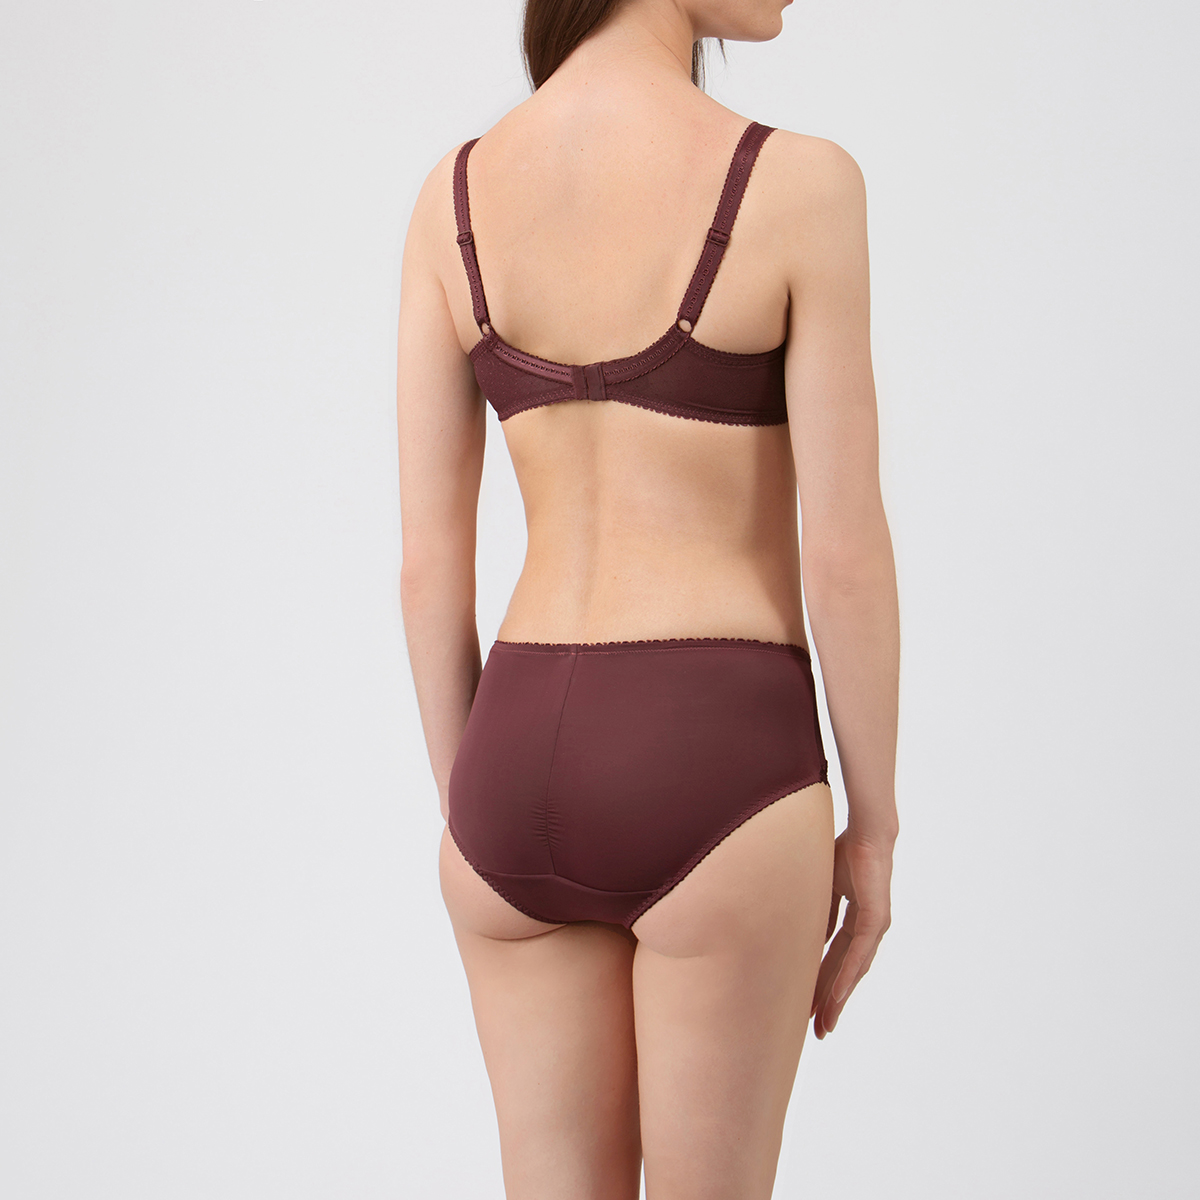 Slip Midi marrone – Criss Cross Pizzo - PLAYTEX